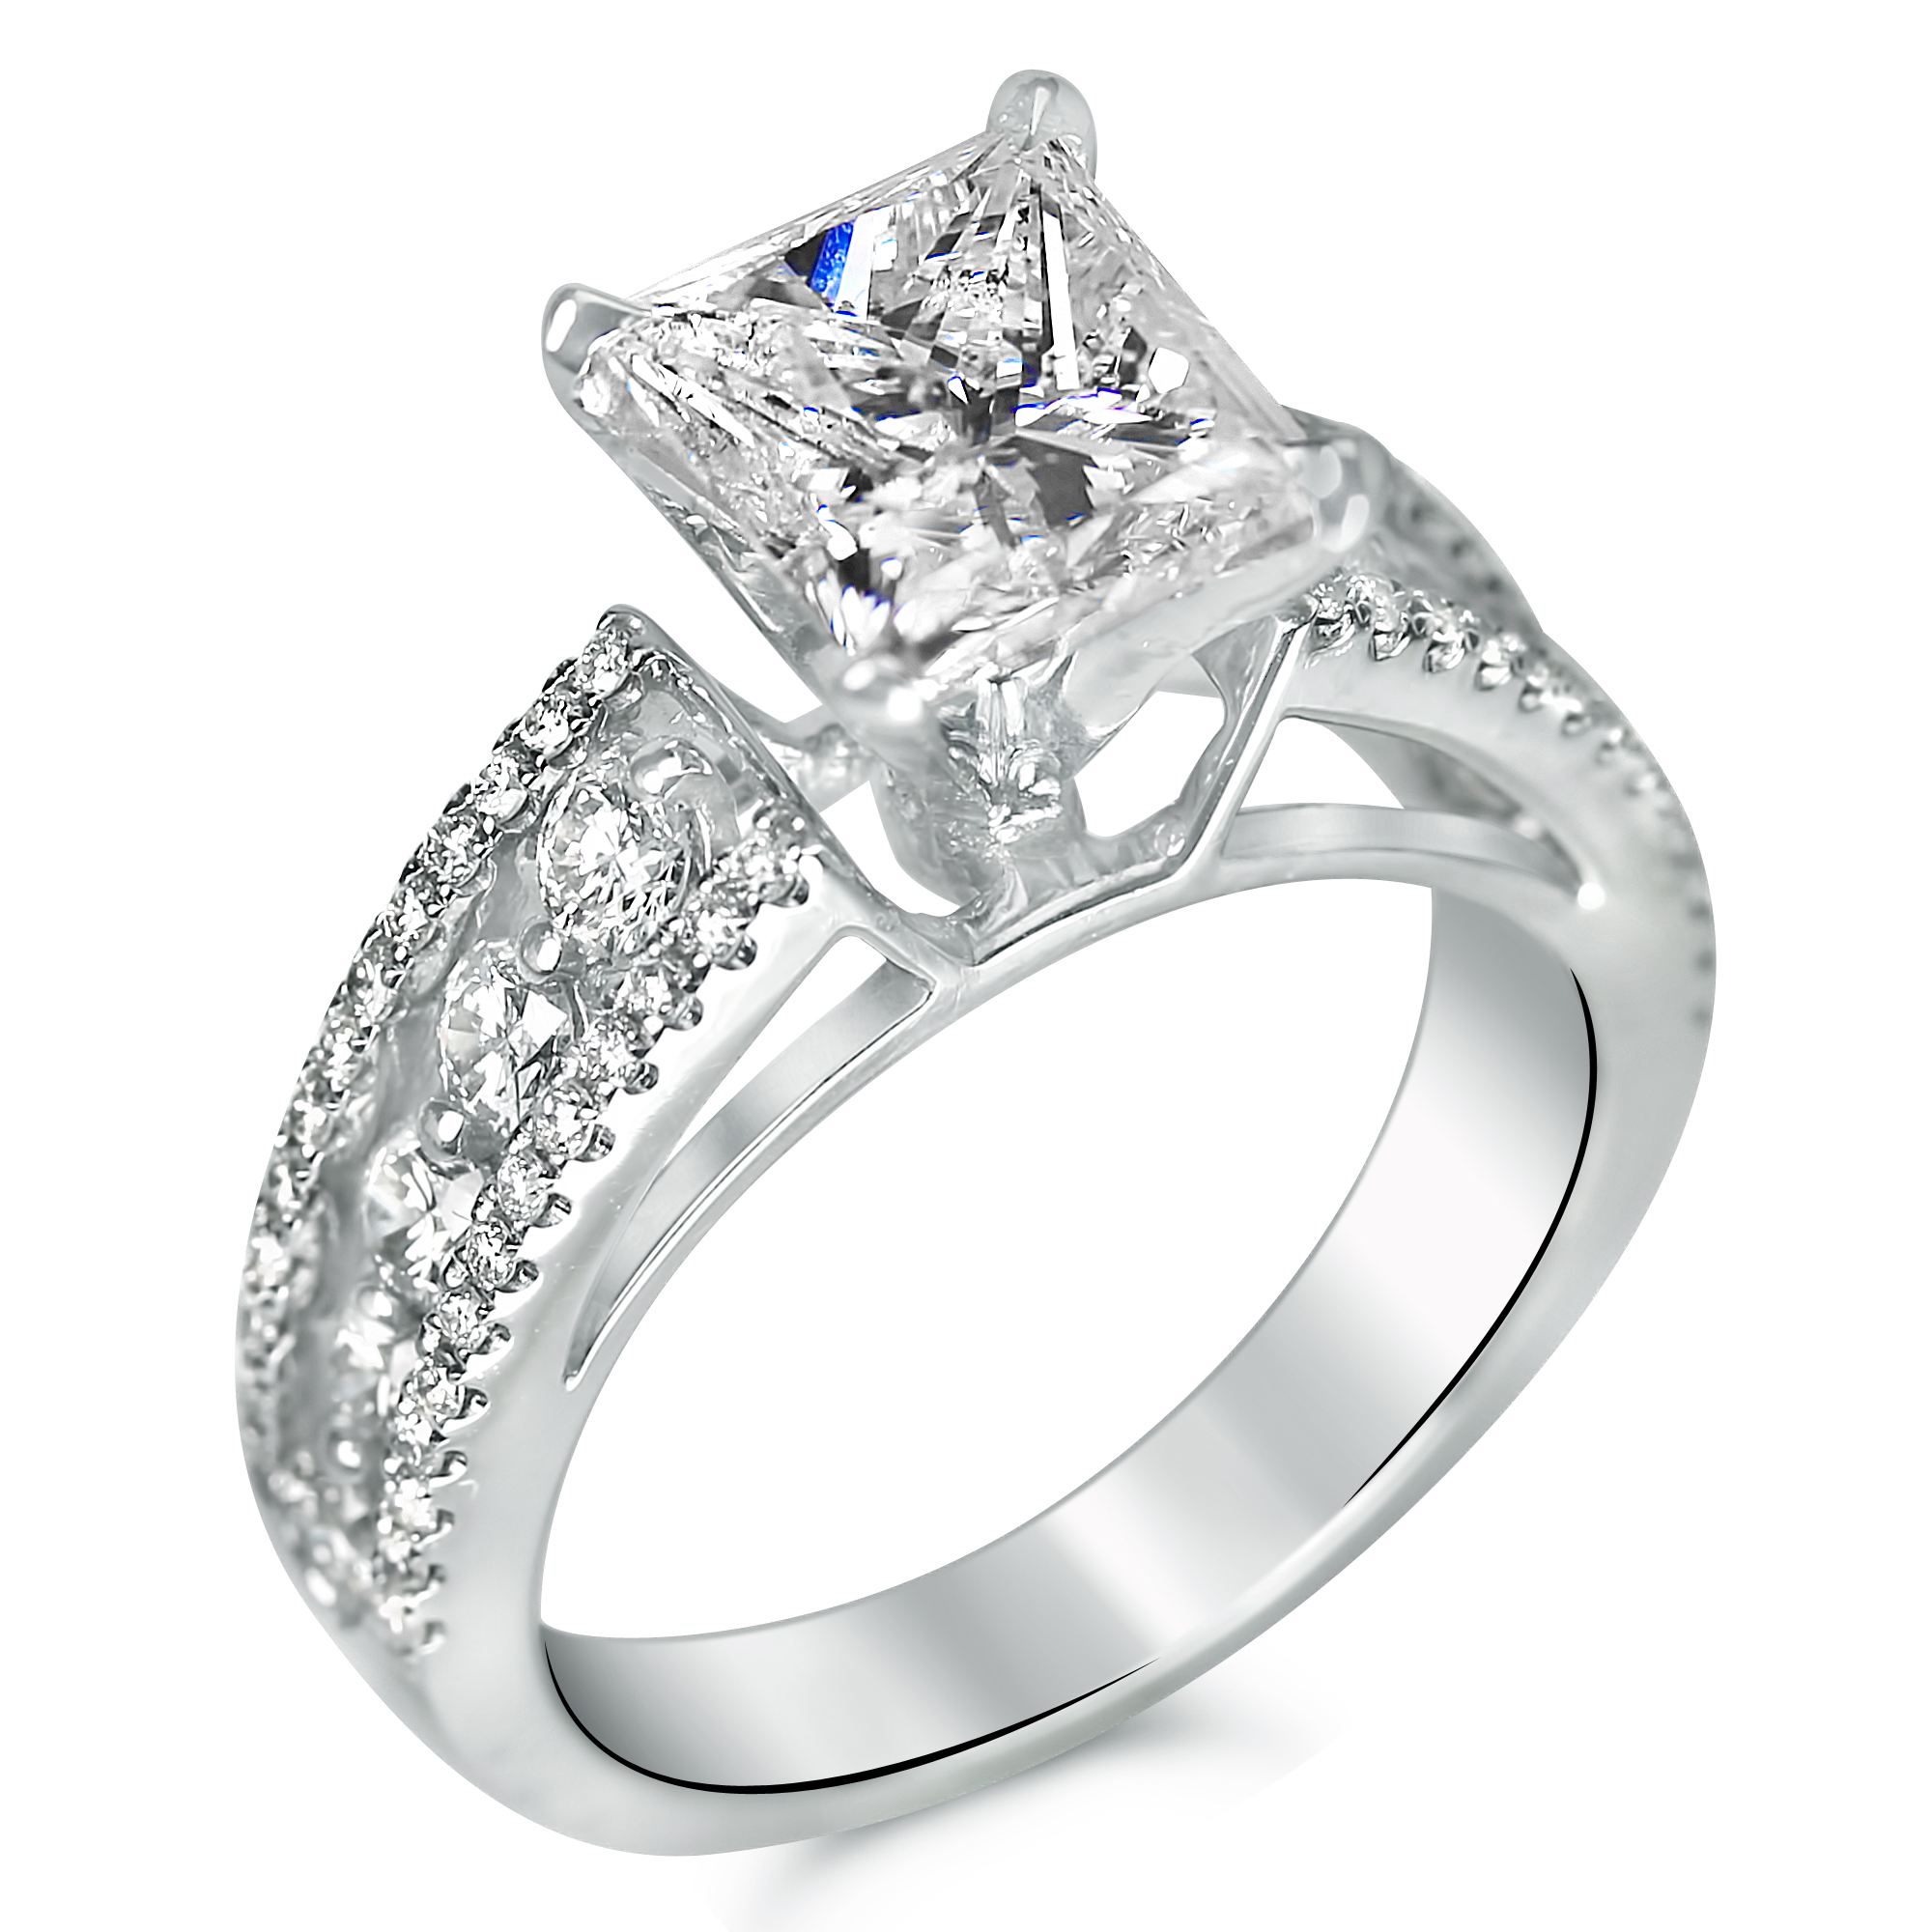 3 Cttw Large Shared Prong And Micro Pave Engagement Ring